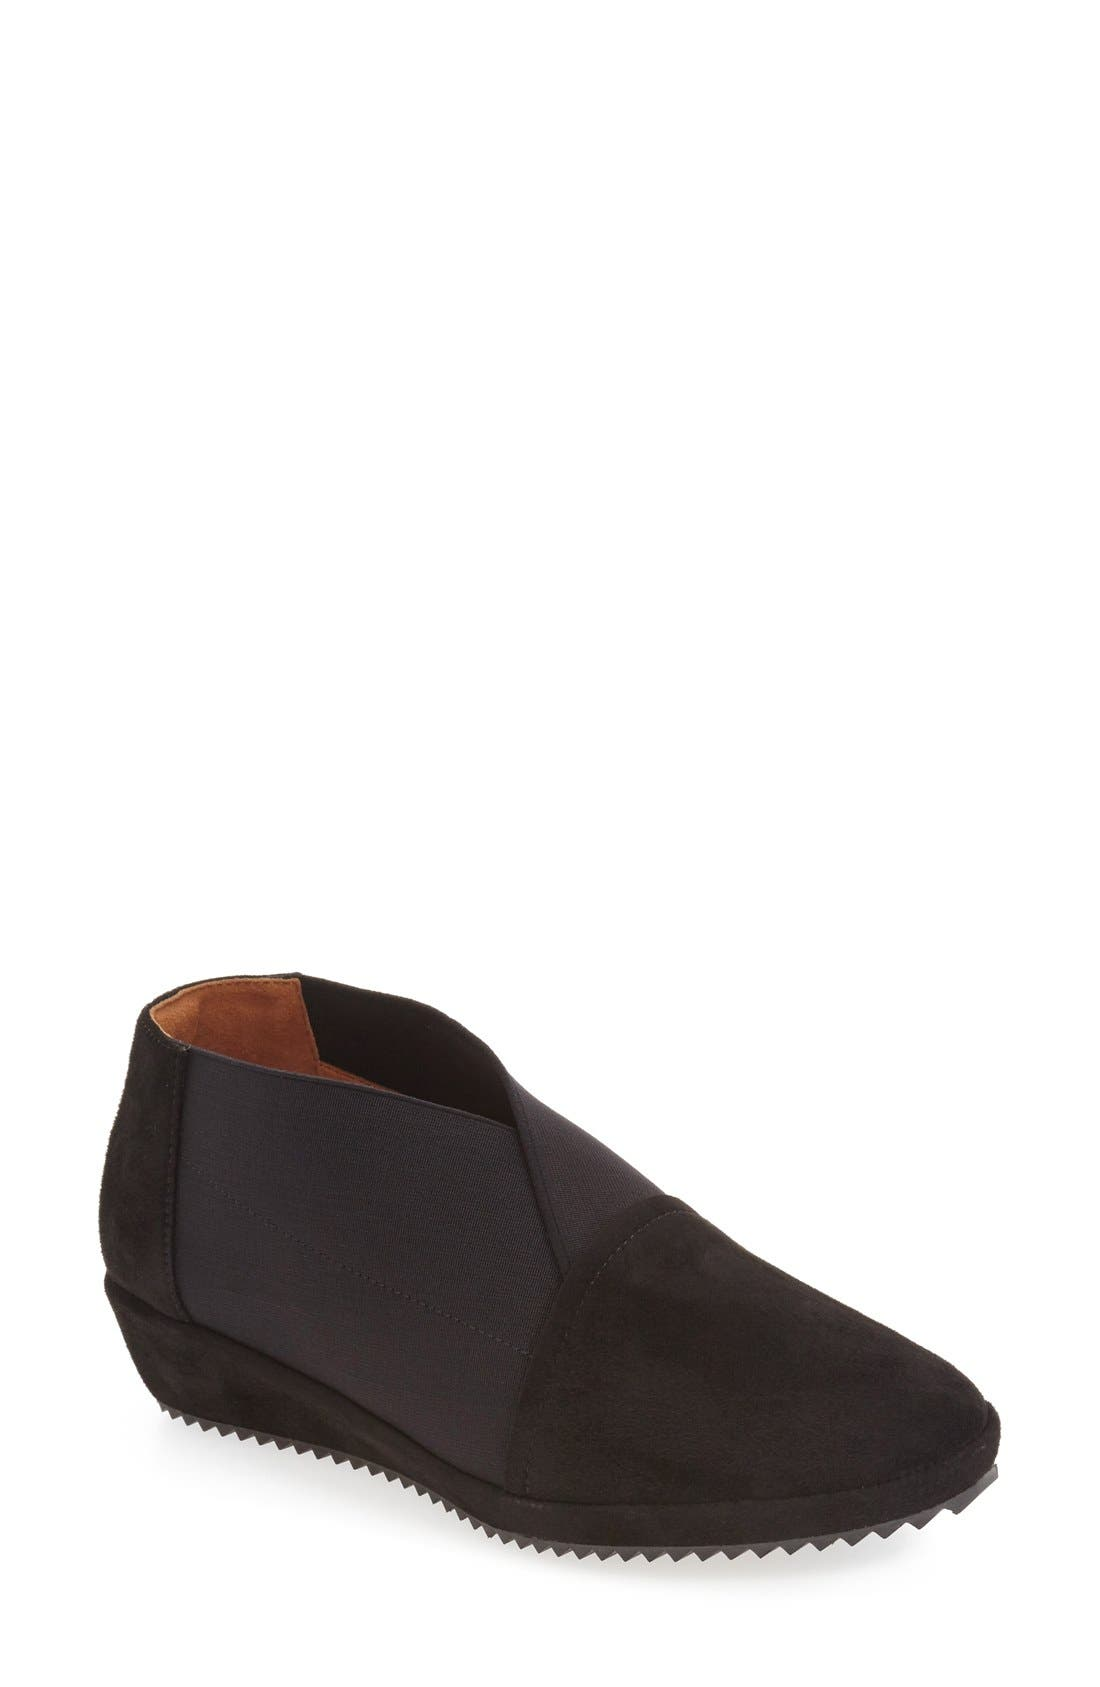 'Bowden' Slip-On Wedge,                         Main,                         color, 001